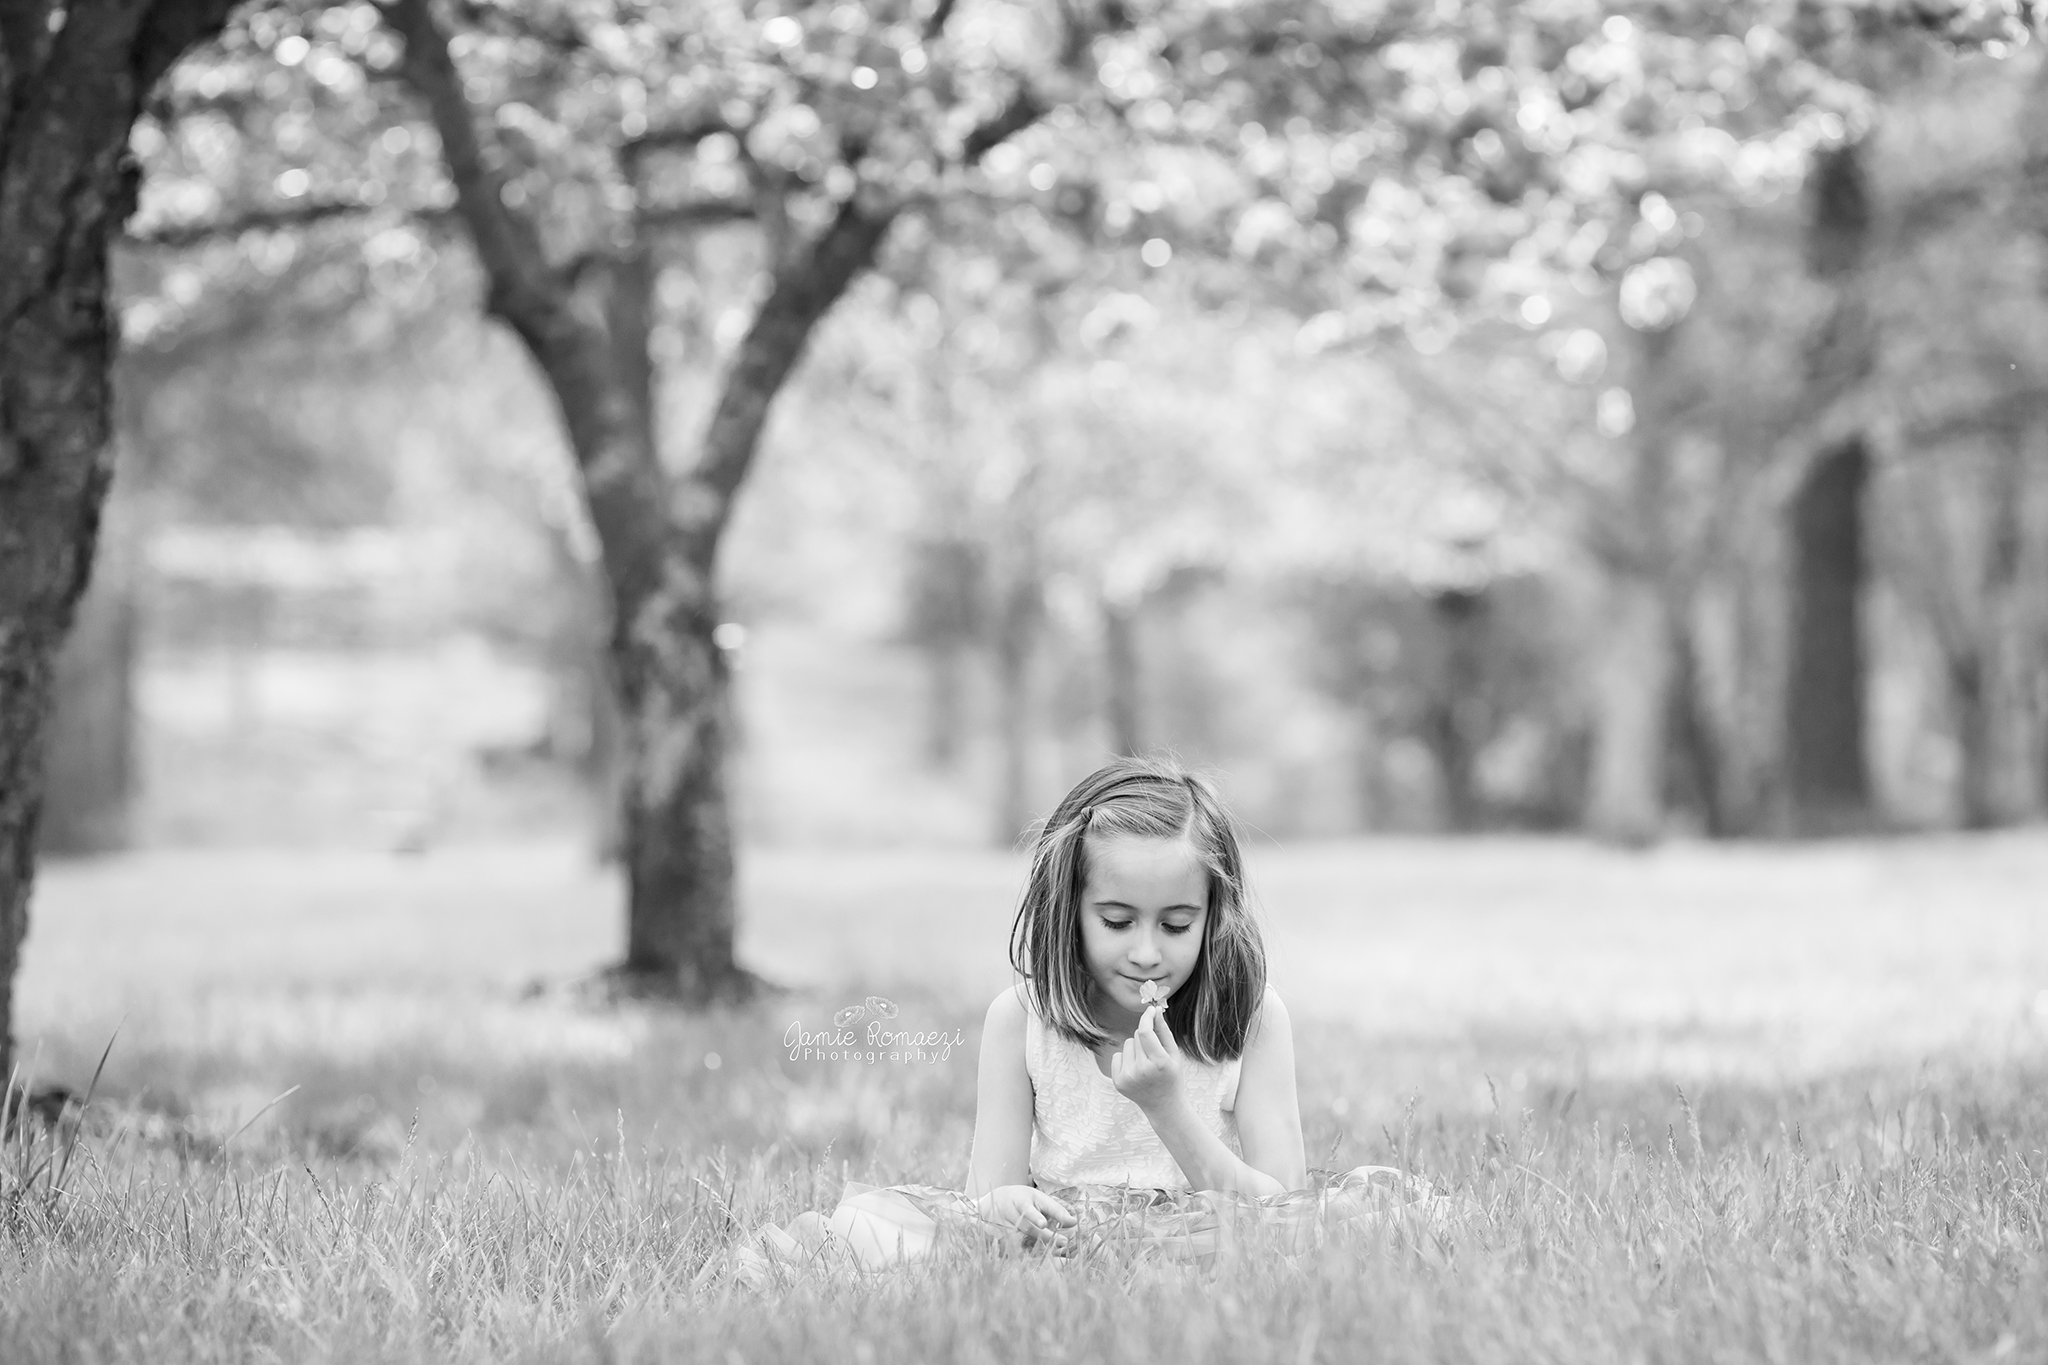 Black and white photos of little girl sitting in the in the grass with cherry blossoms in the background